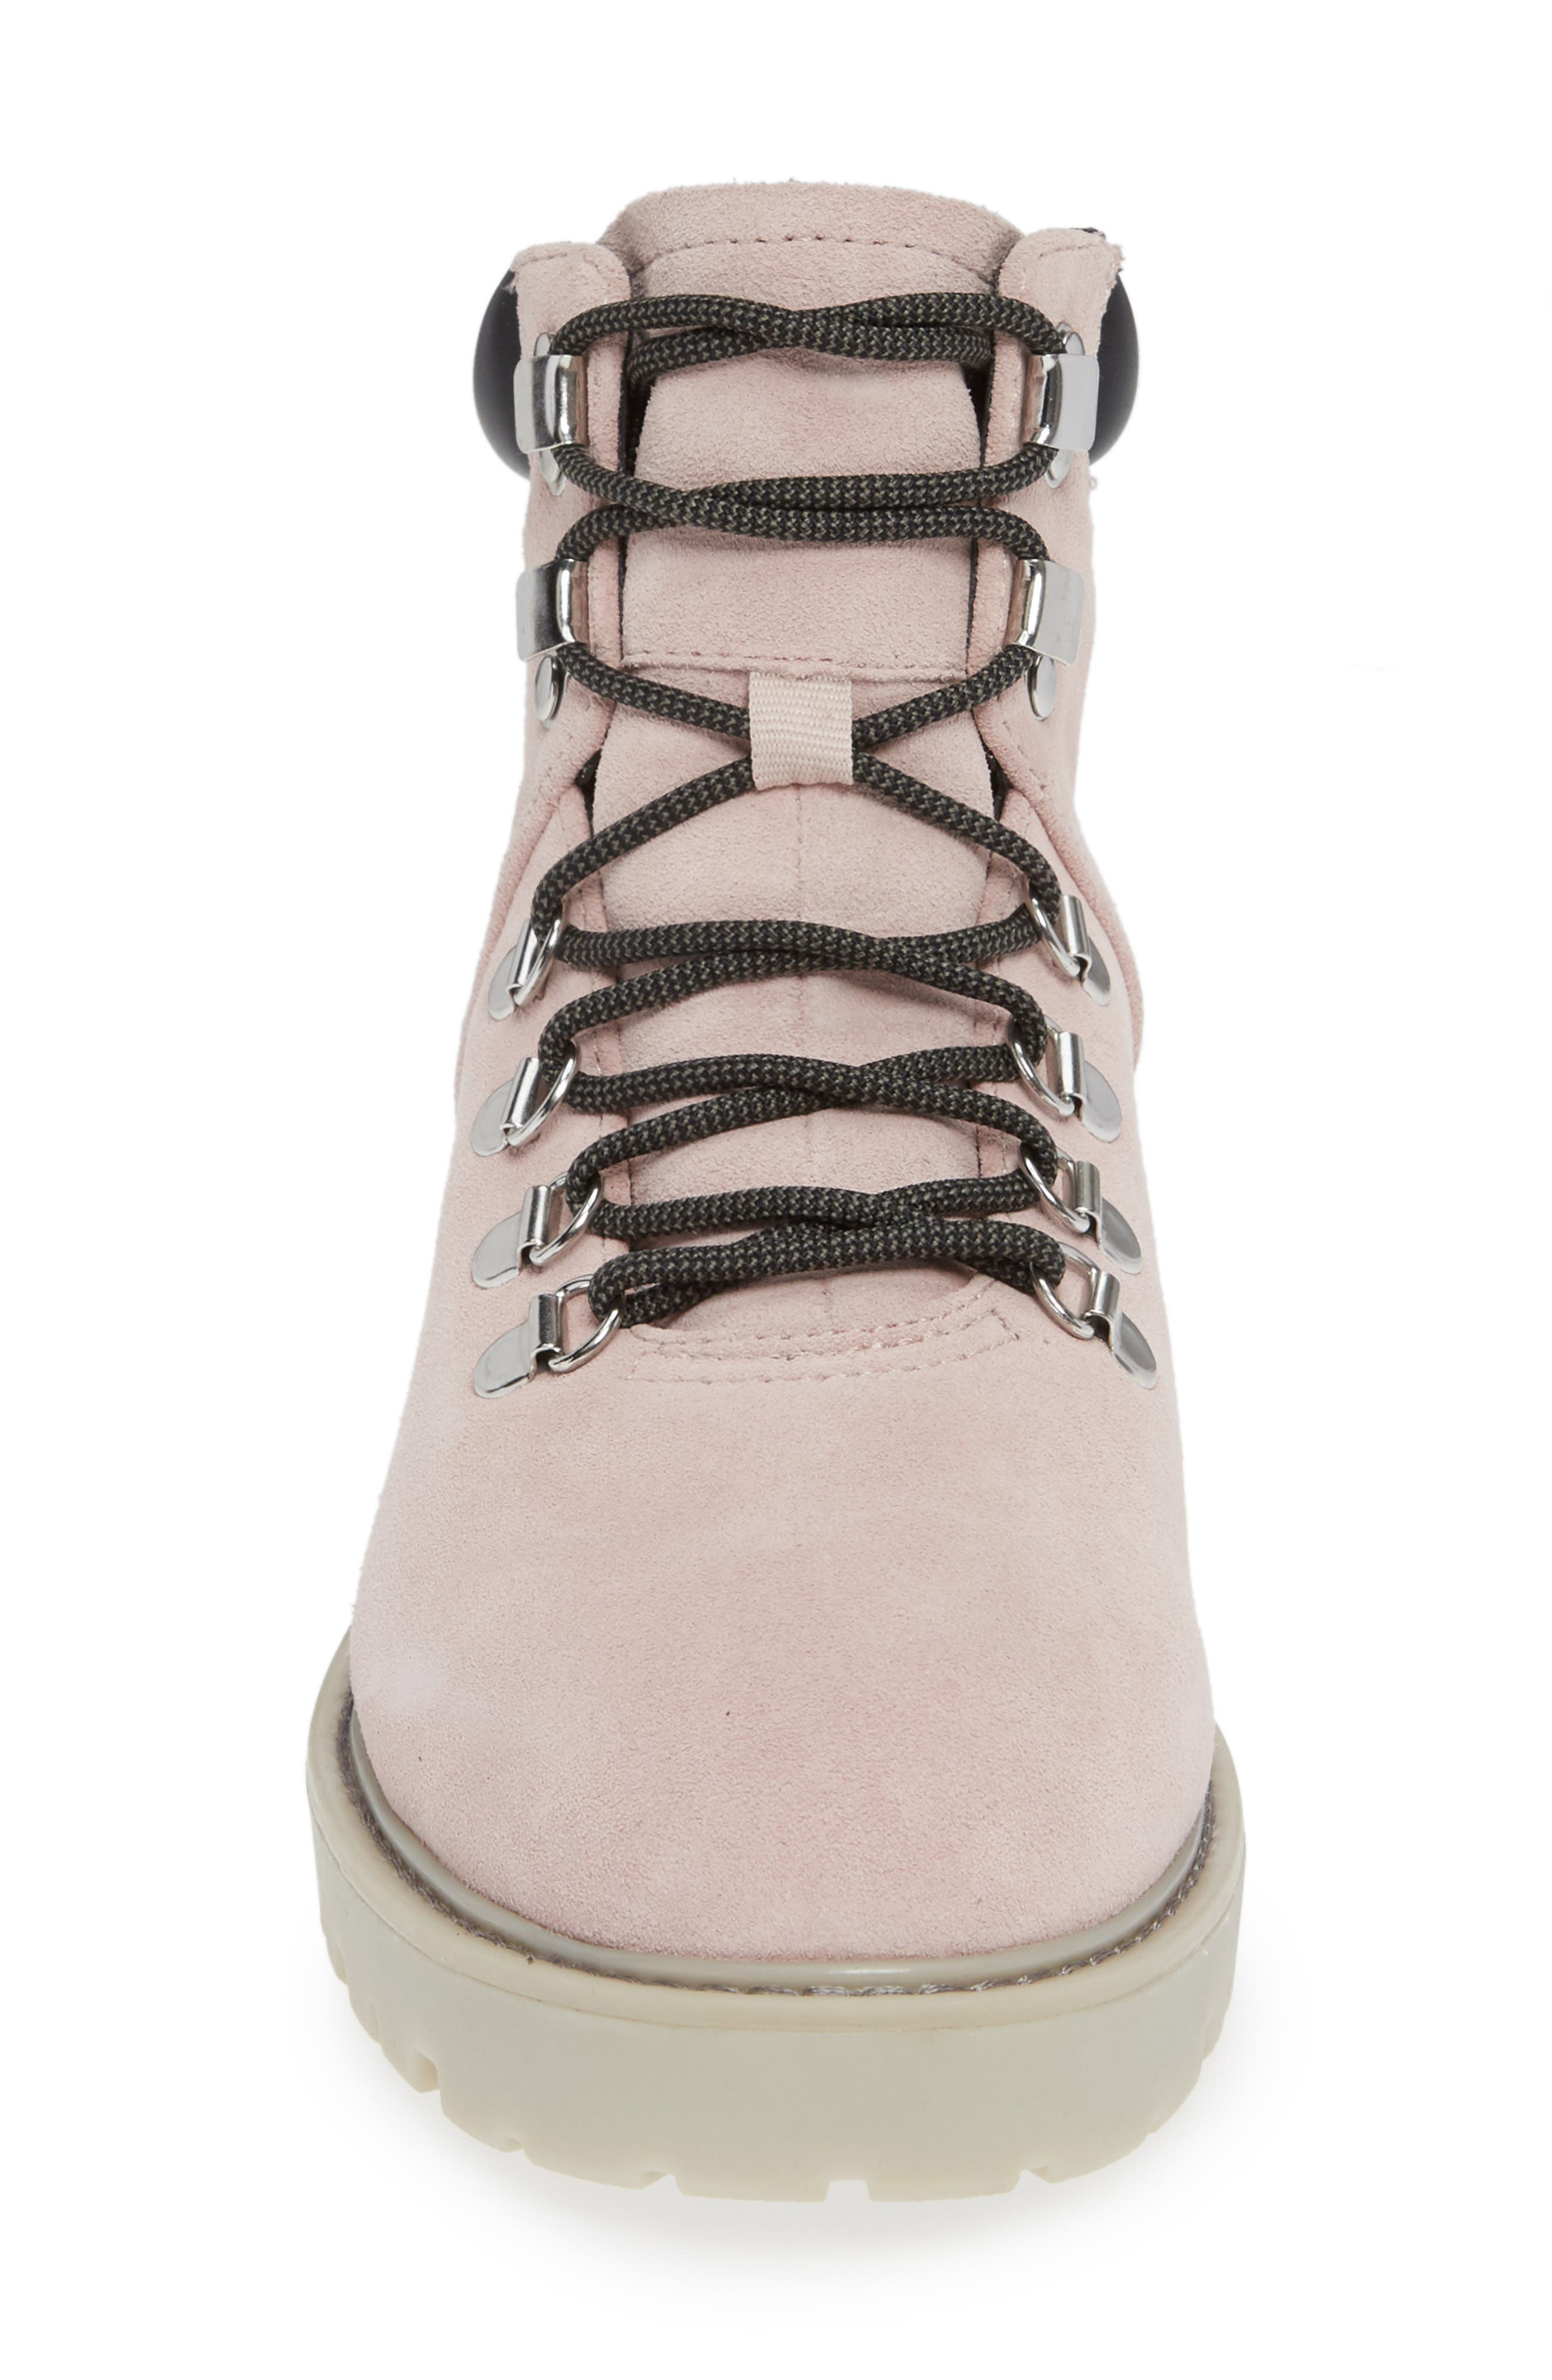 VAGABOND,                             Shoemakers Kenova Boot,                             Alternate thumbnail 4, color,                             MILKSHAKE SUEDE